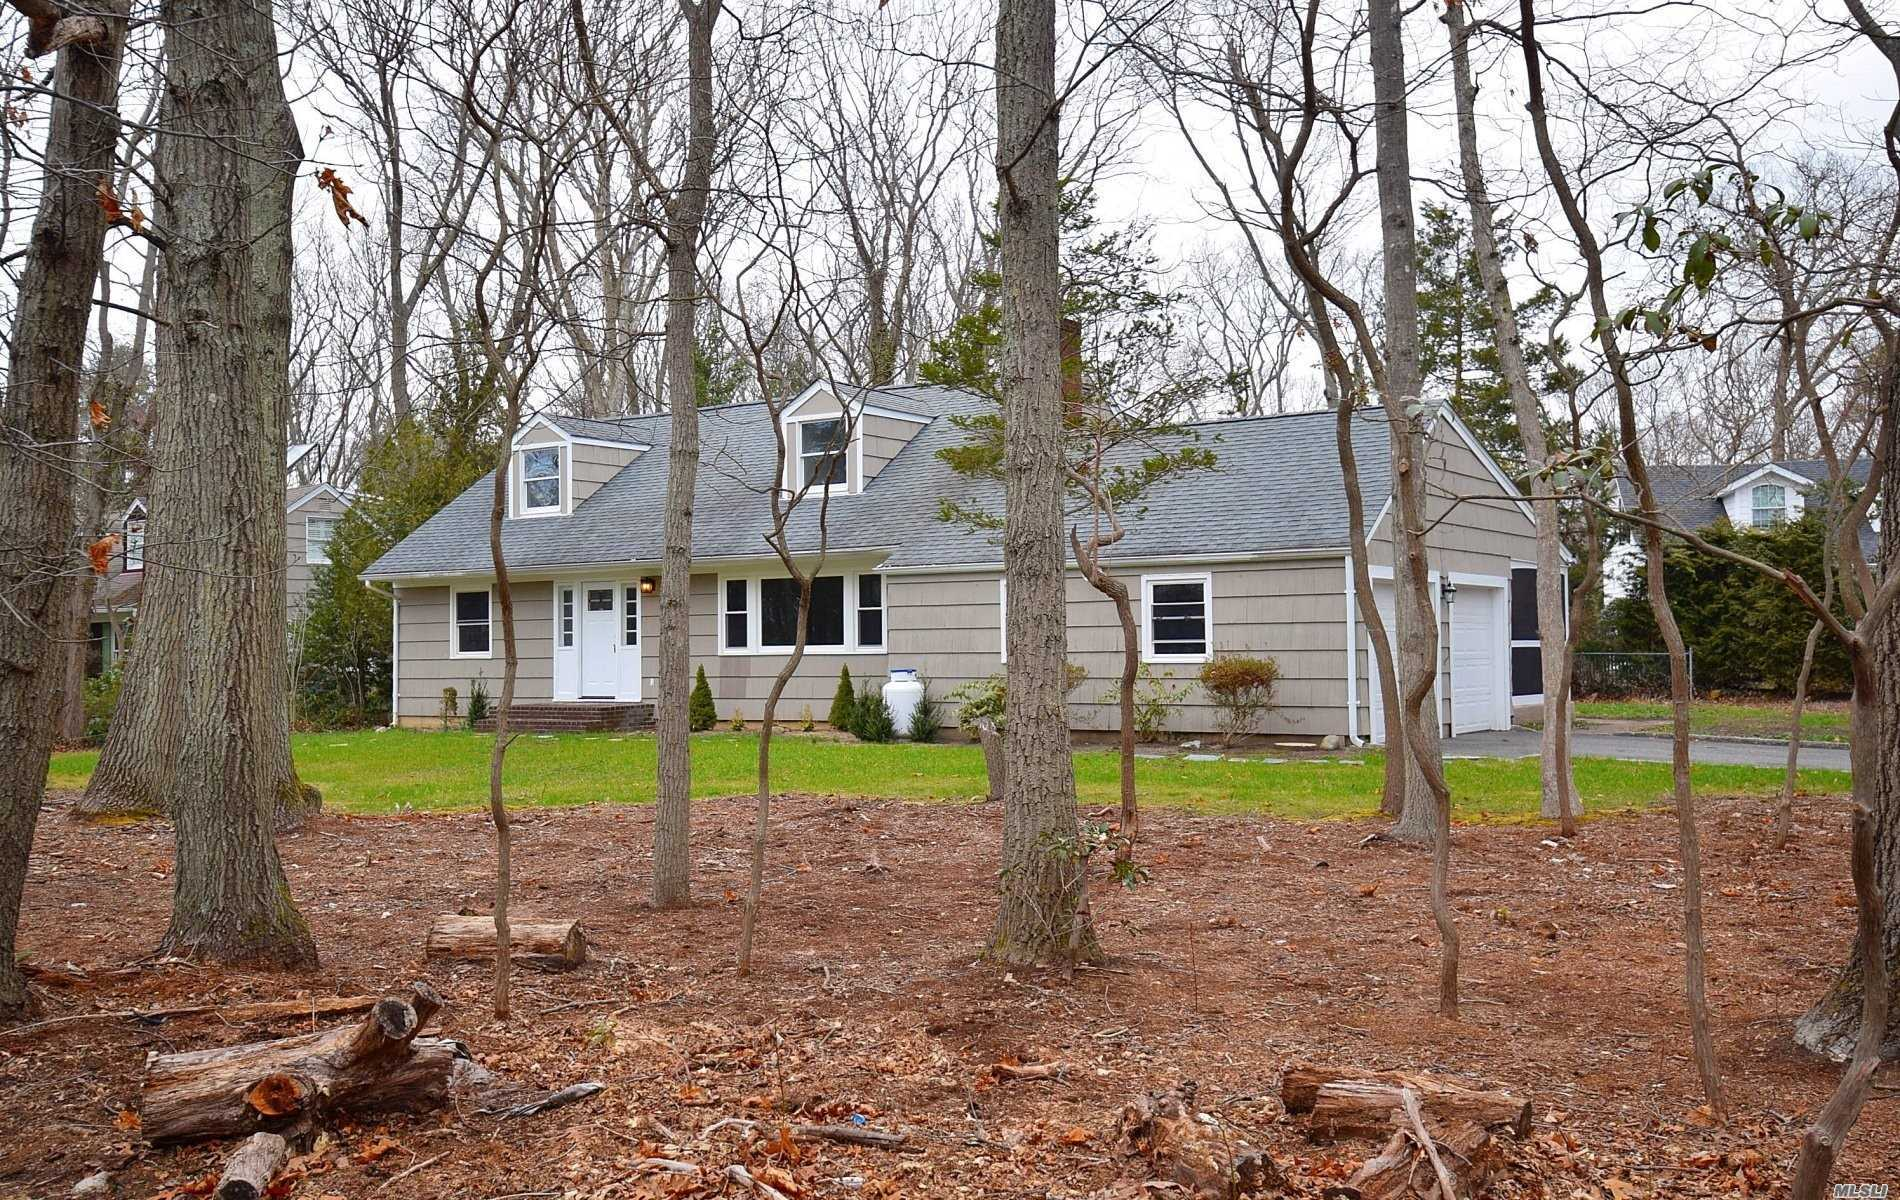 Superb Home, New Kitchen, Baths, Flooring, Boiler, Electric, Cac. Just Unpack And Relax In This Beautifully Redone House With Enclosed Porch, Rear Deck And Large Lot With The 2Car Garage Entrance On Cul-De-Sac!